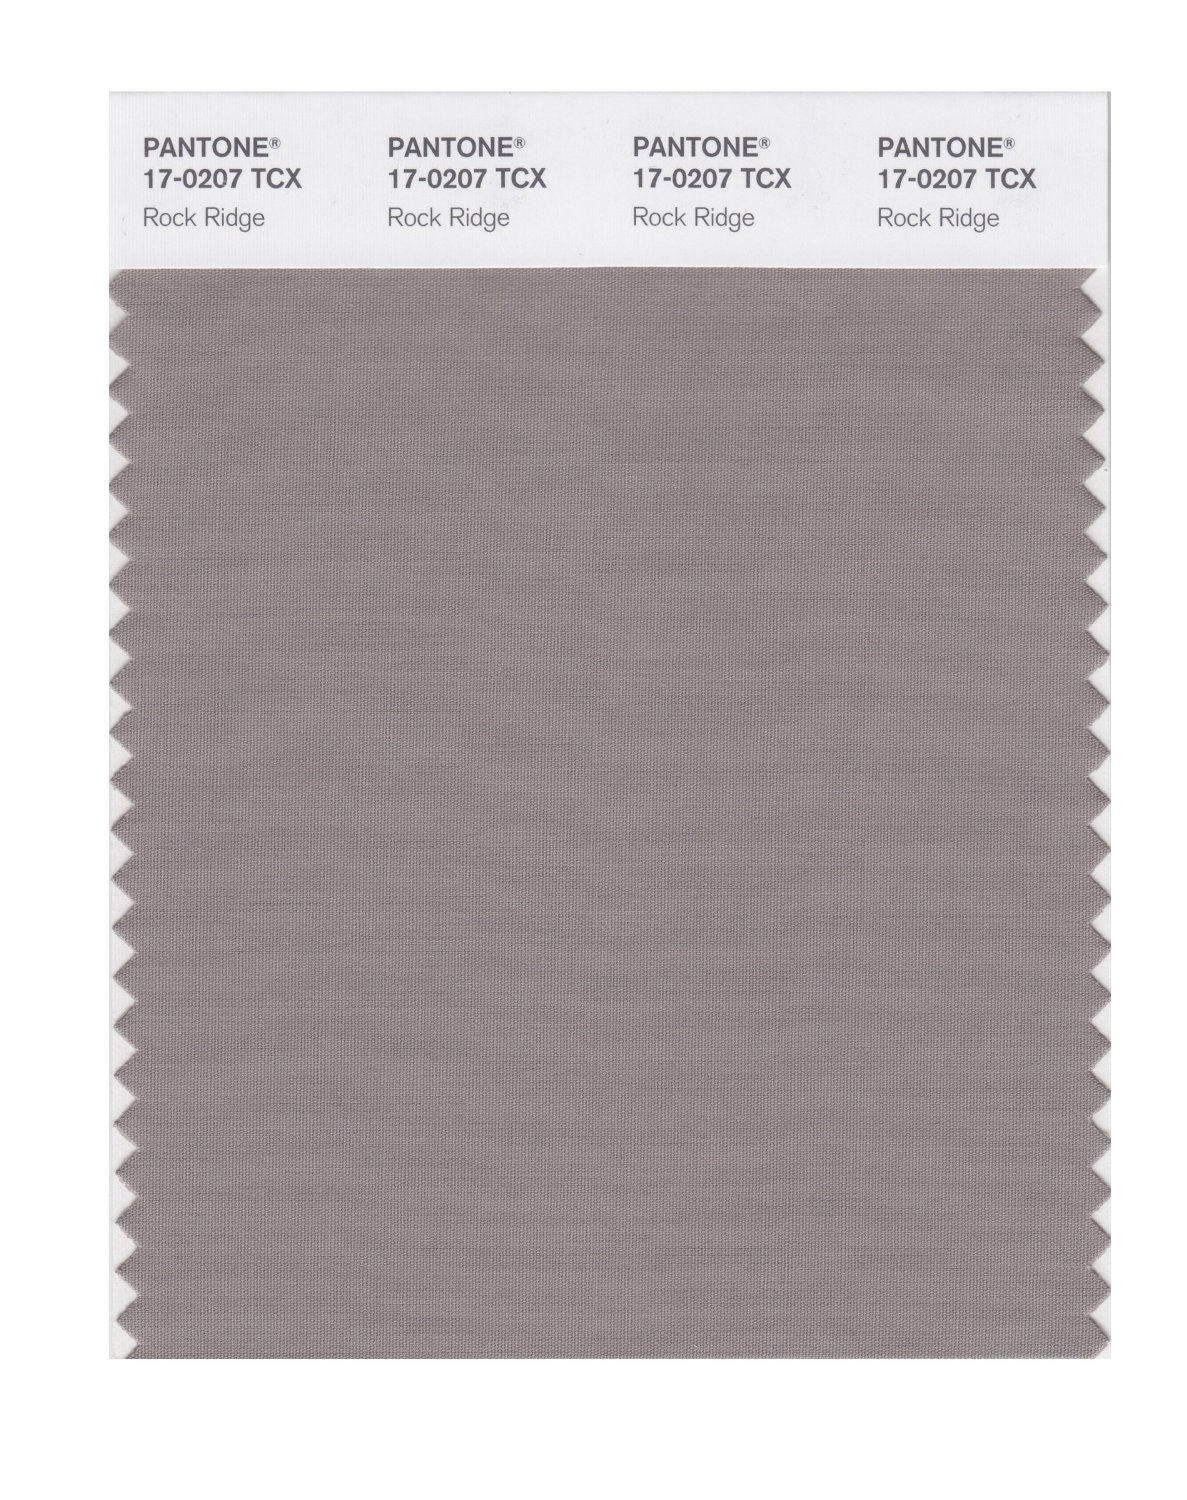 Pantone Smart Swatch 17-0207 Rock Ridge